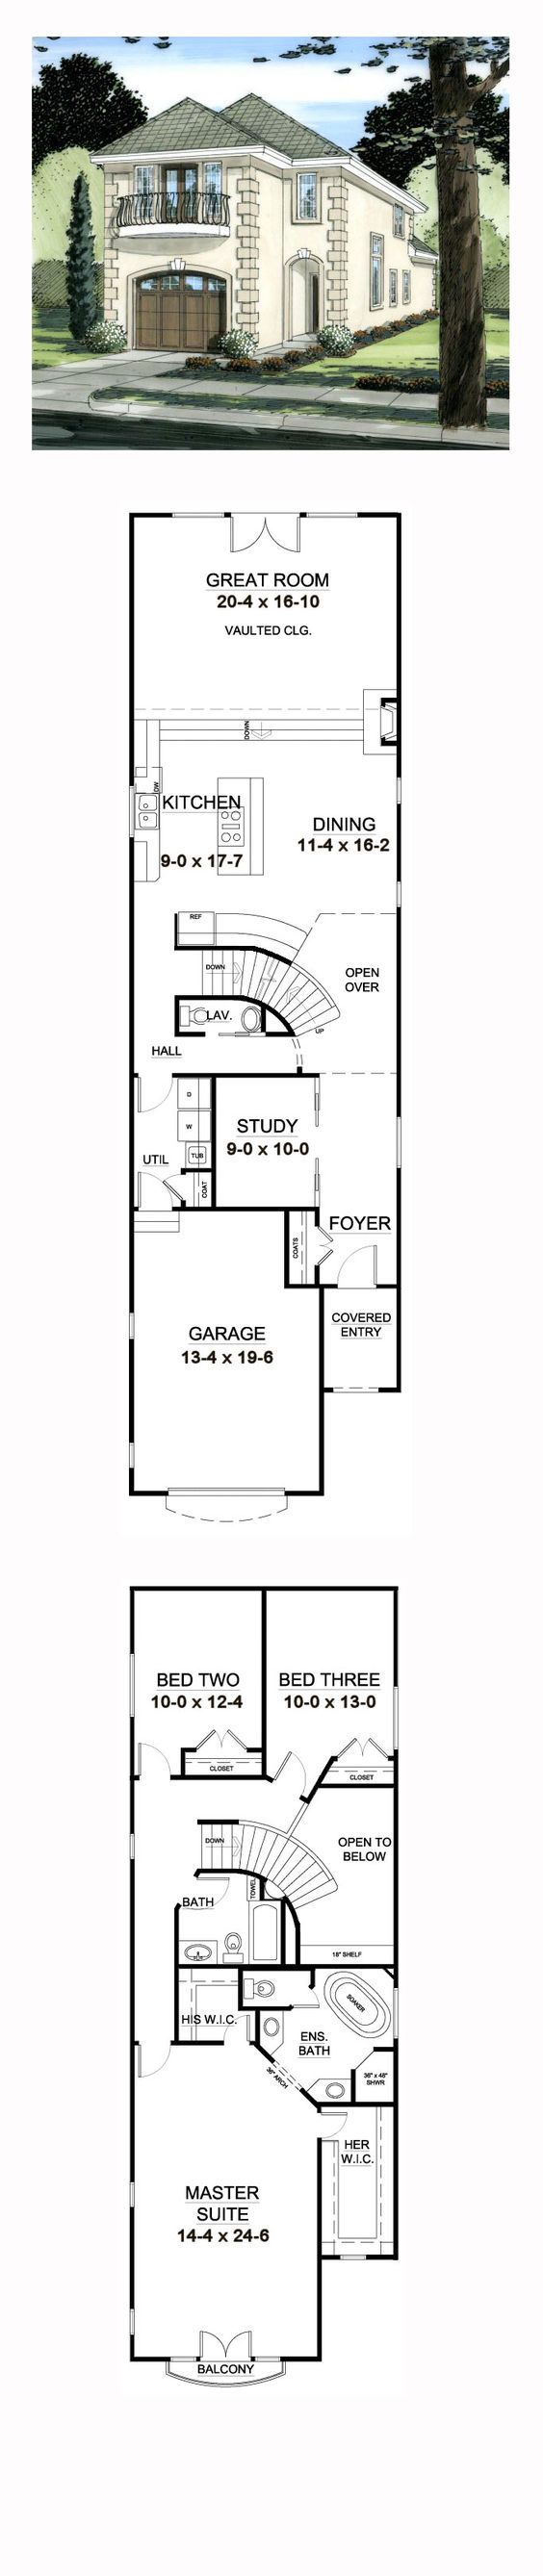 Florida house plan 99997 house chang 39 e 3 and narrow lot House plans for long narrow lots